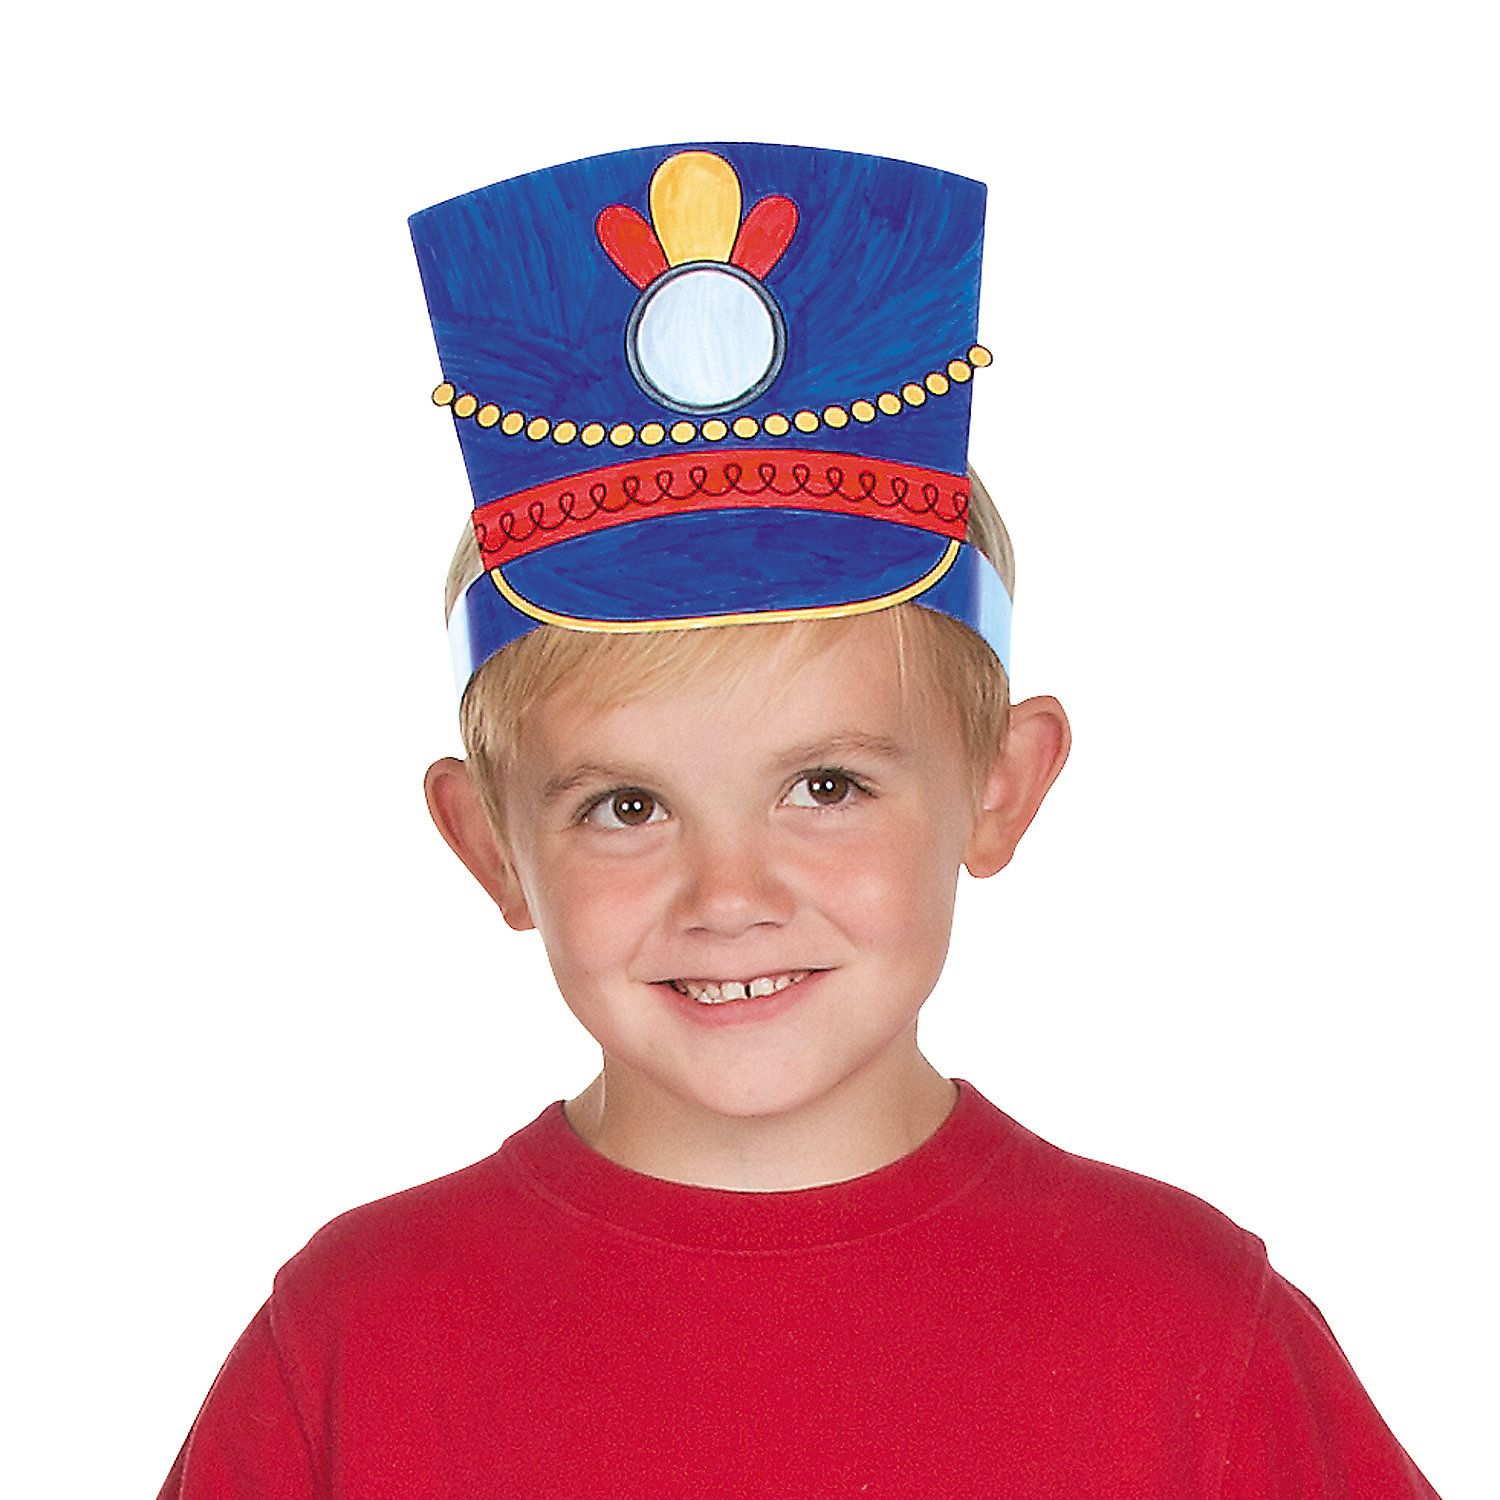 Color Your Own Toy Soldier Hats Coloring Crafts Crafts For Kids